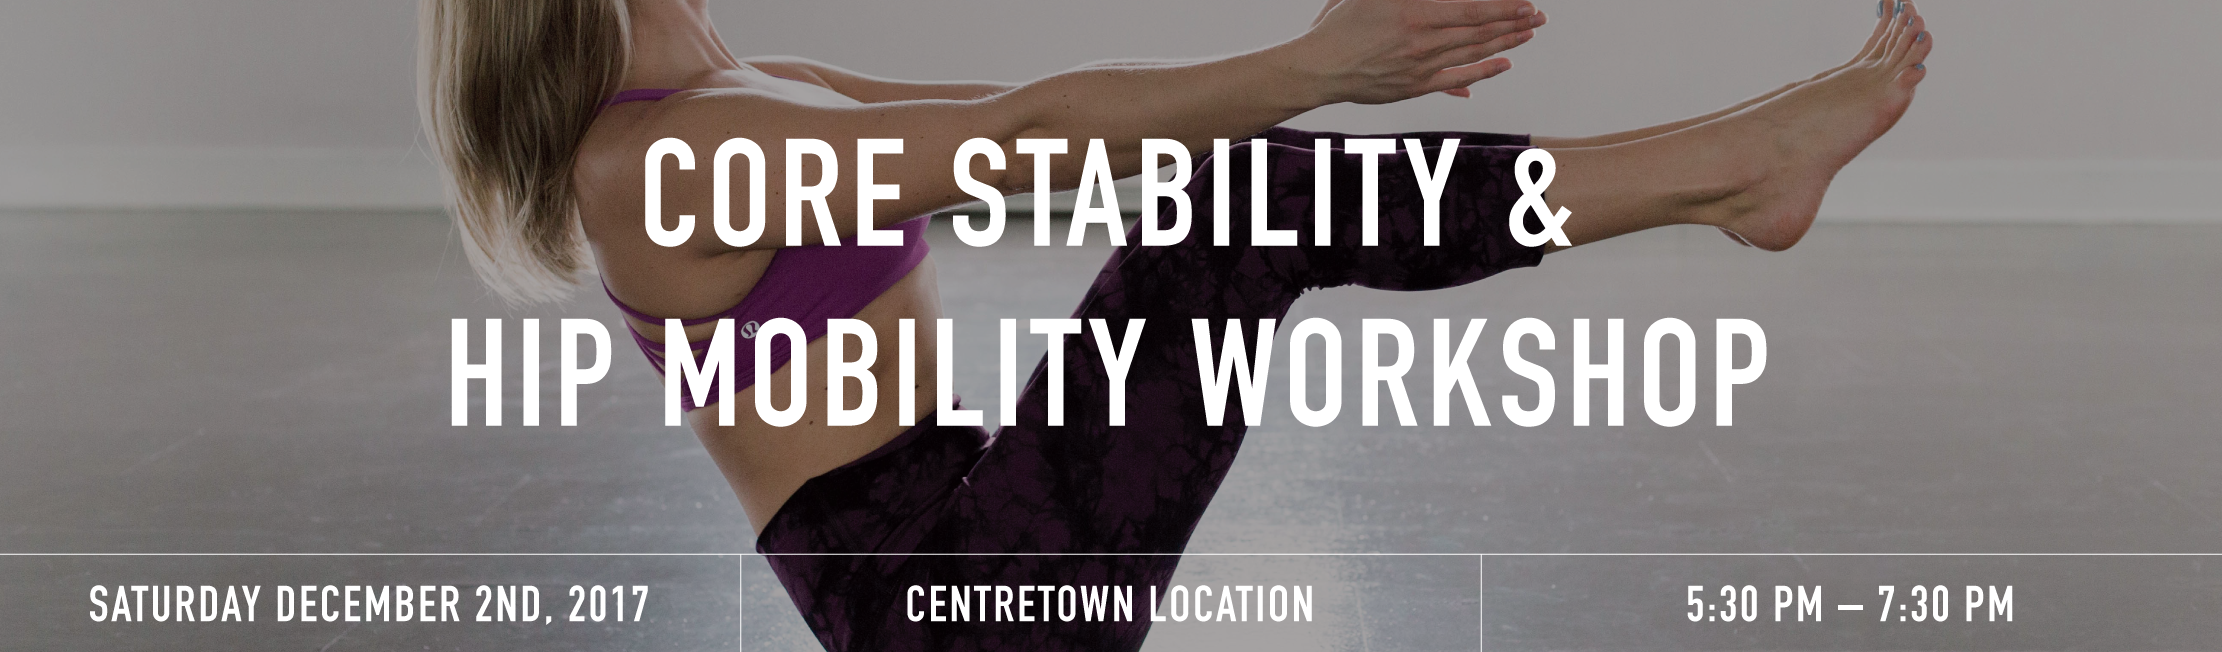 Core stability banner  1